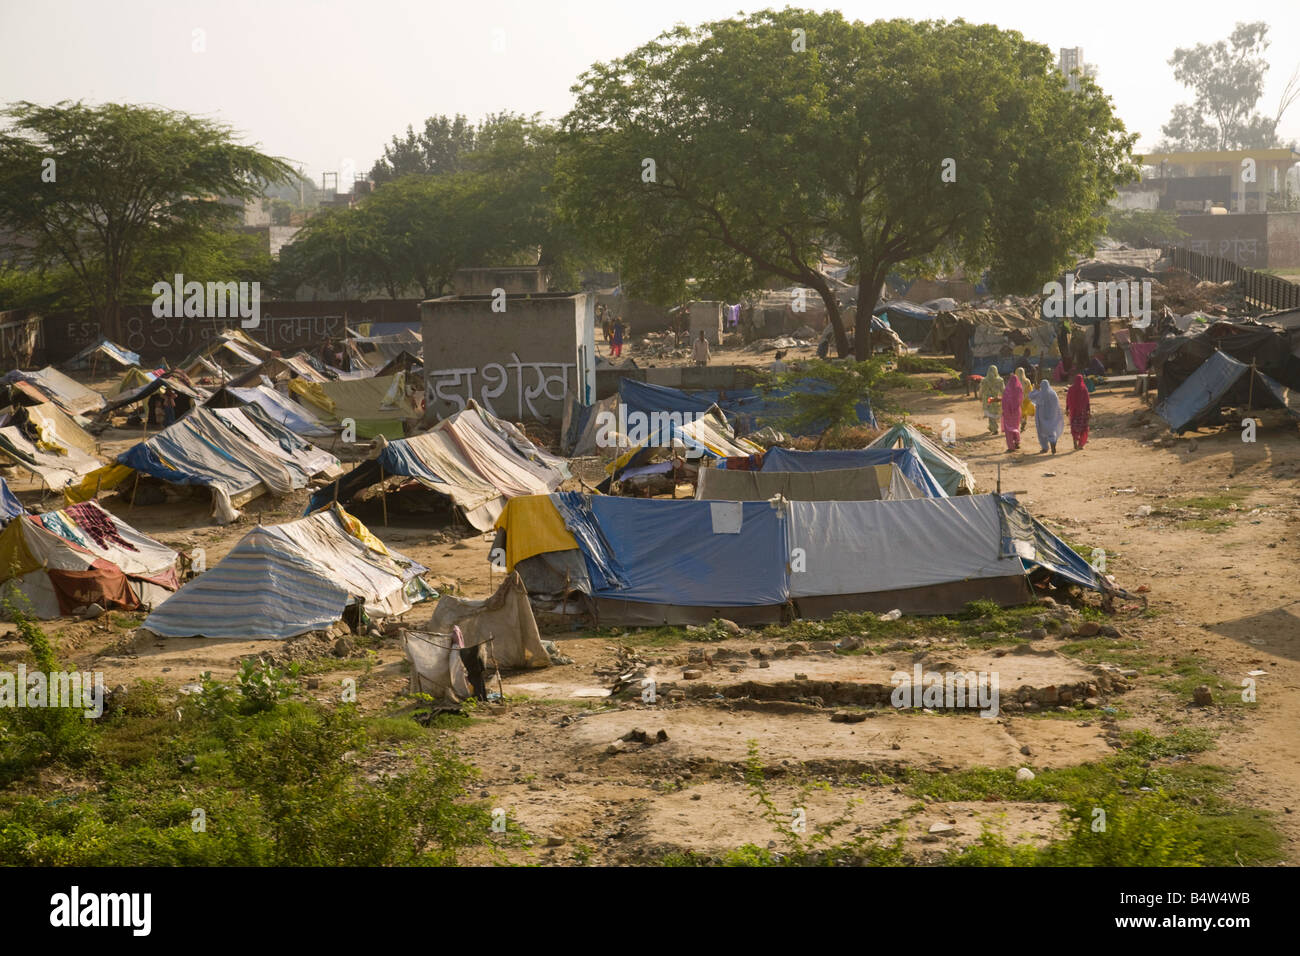 People living in slums - a tented village in the slums of New Delhi, India, Asia - Stock Image